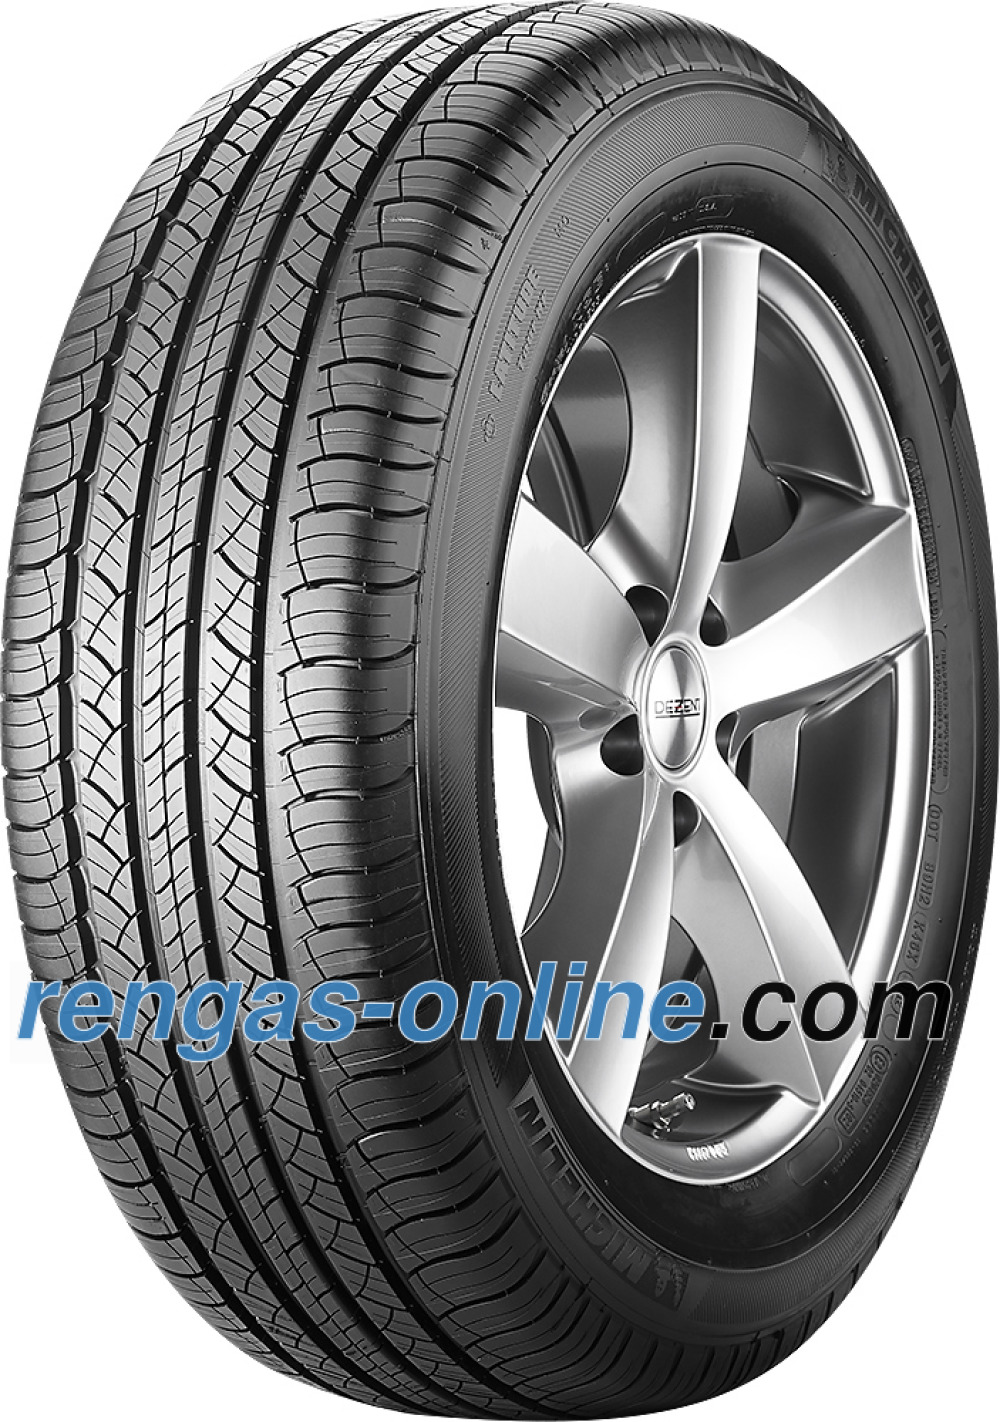 michelin-latitude-tour-hp-23565-r17-104v-mo